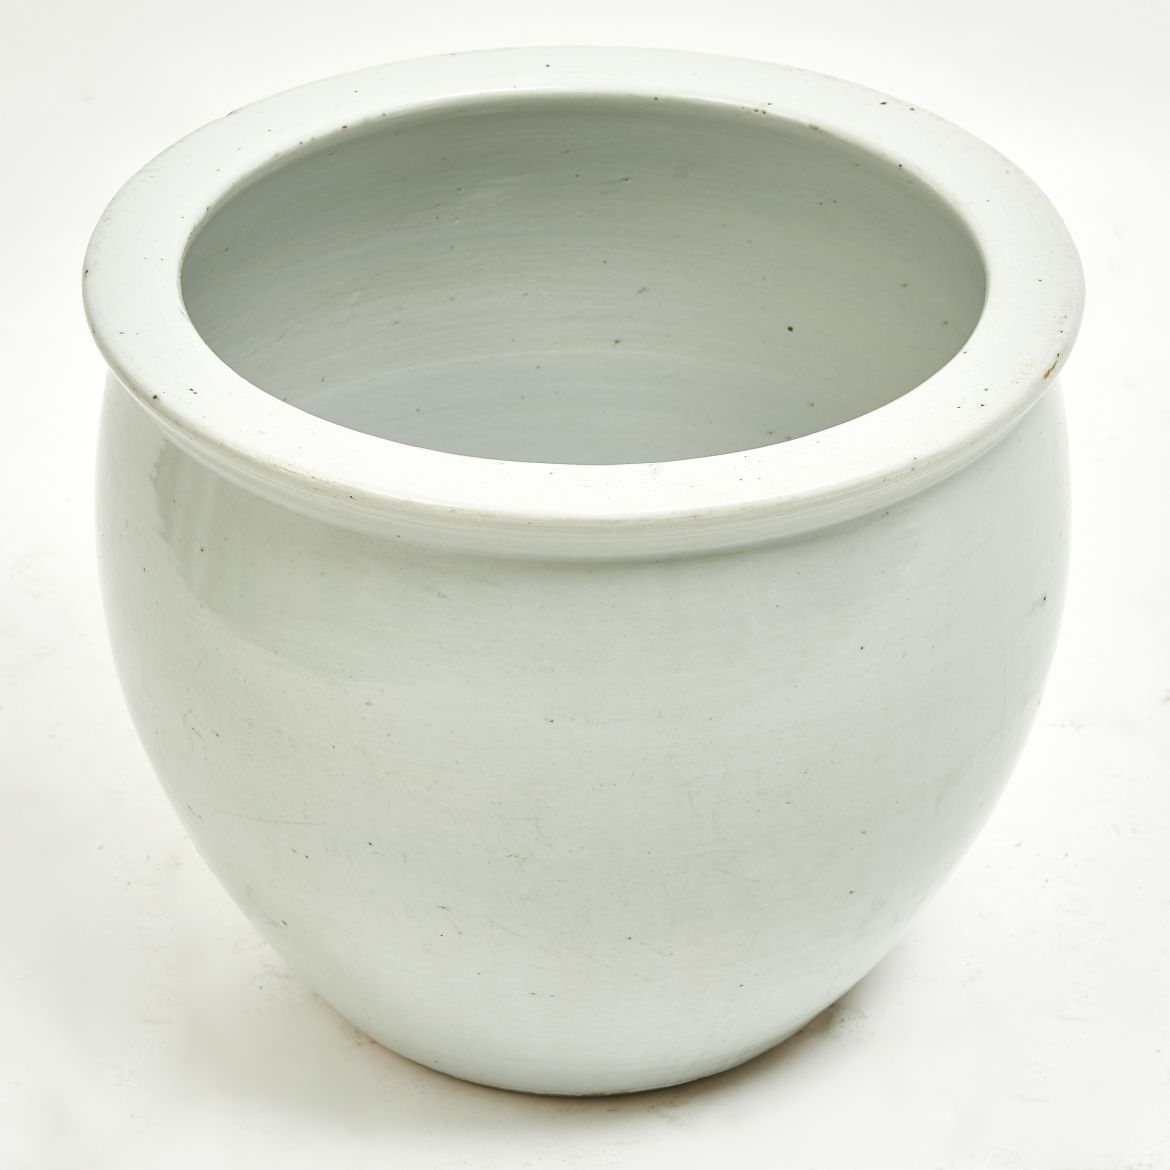 Chinese White Porcelain Fishbowl